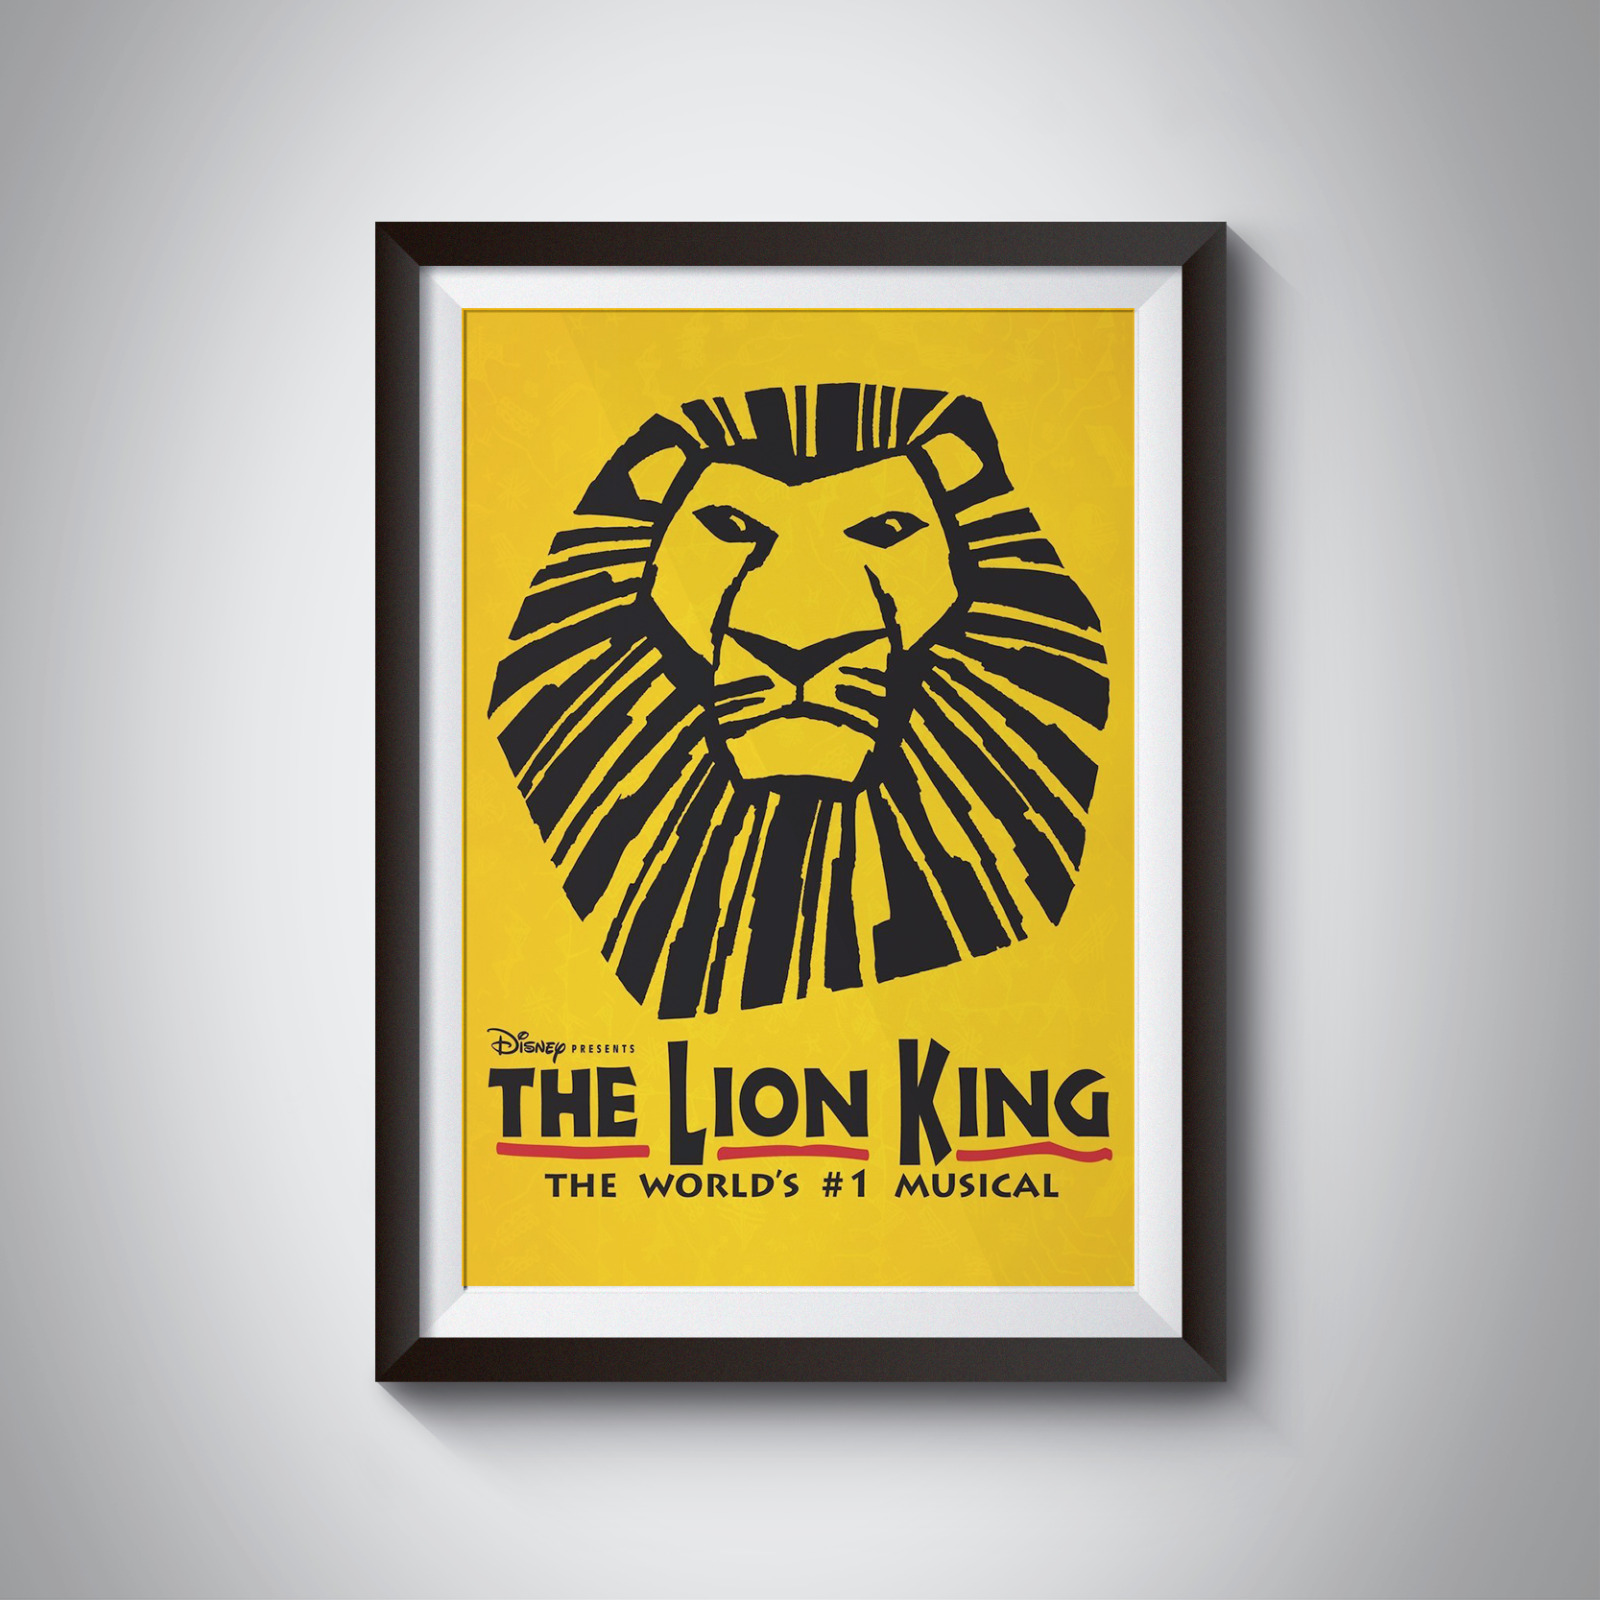 THE LION KING - MUSICAL POSTERS - A4 - A3 - Home / Office / Wall Art ...